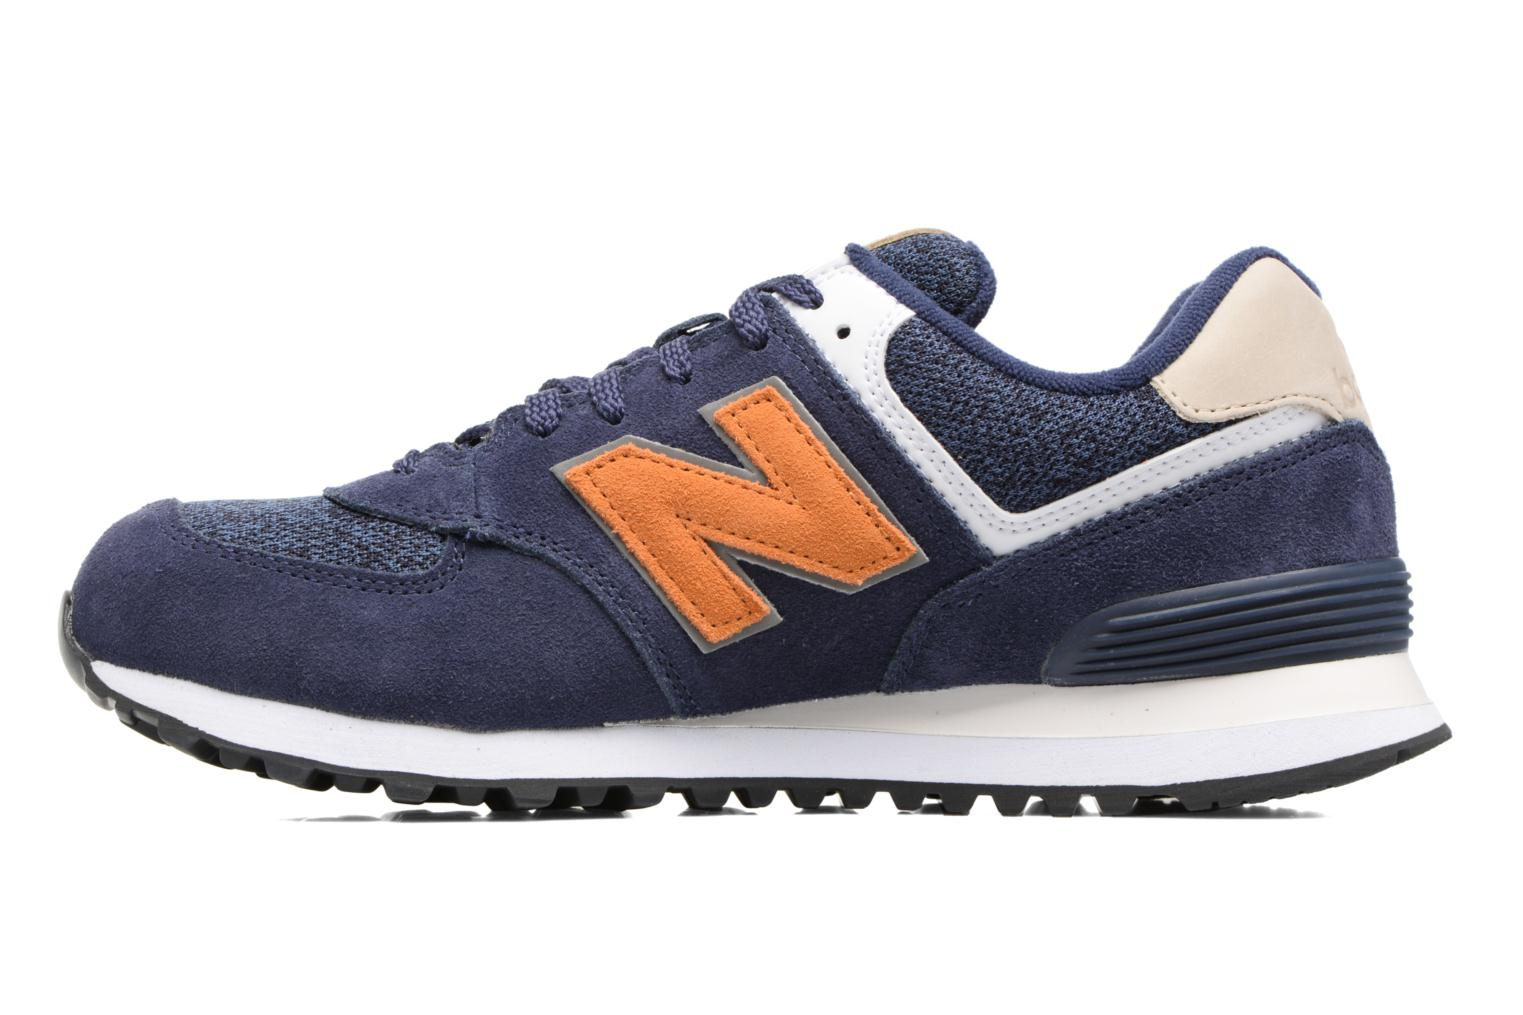 Ml574 Navy/orange